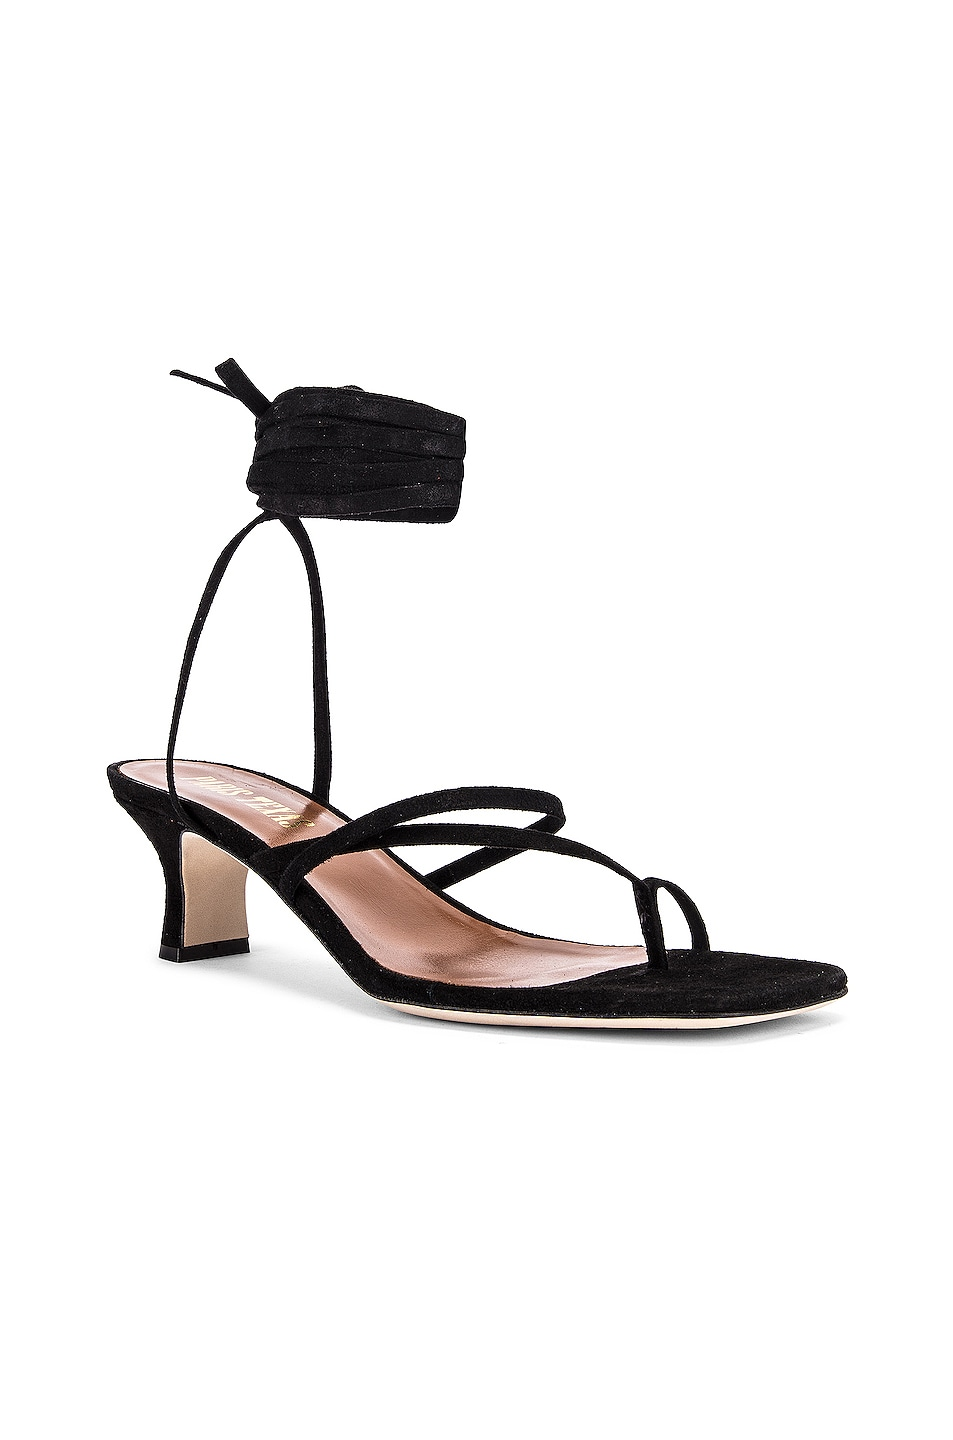 Image 2 of Paris Texas Suede Wrap Sandal in Black